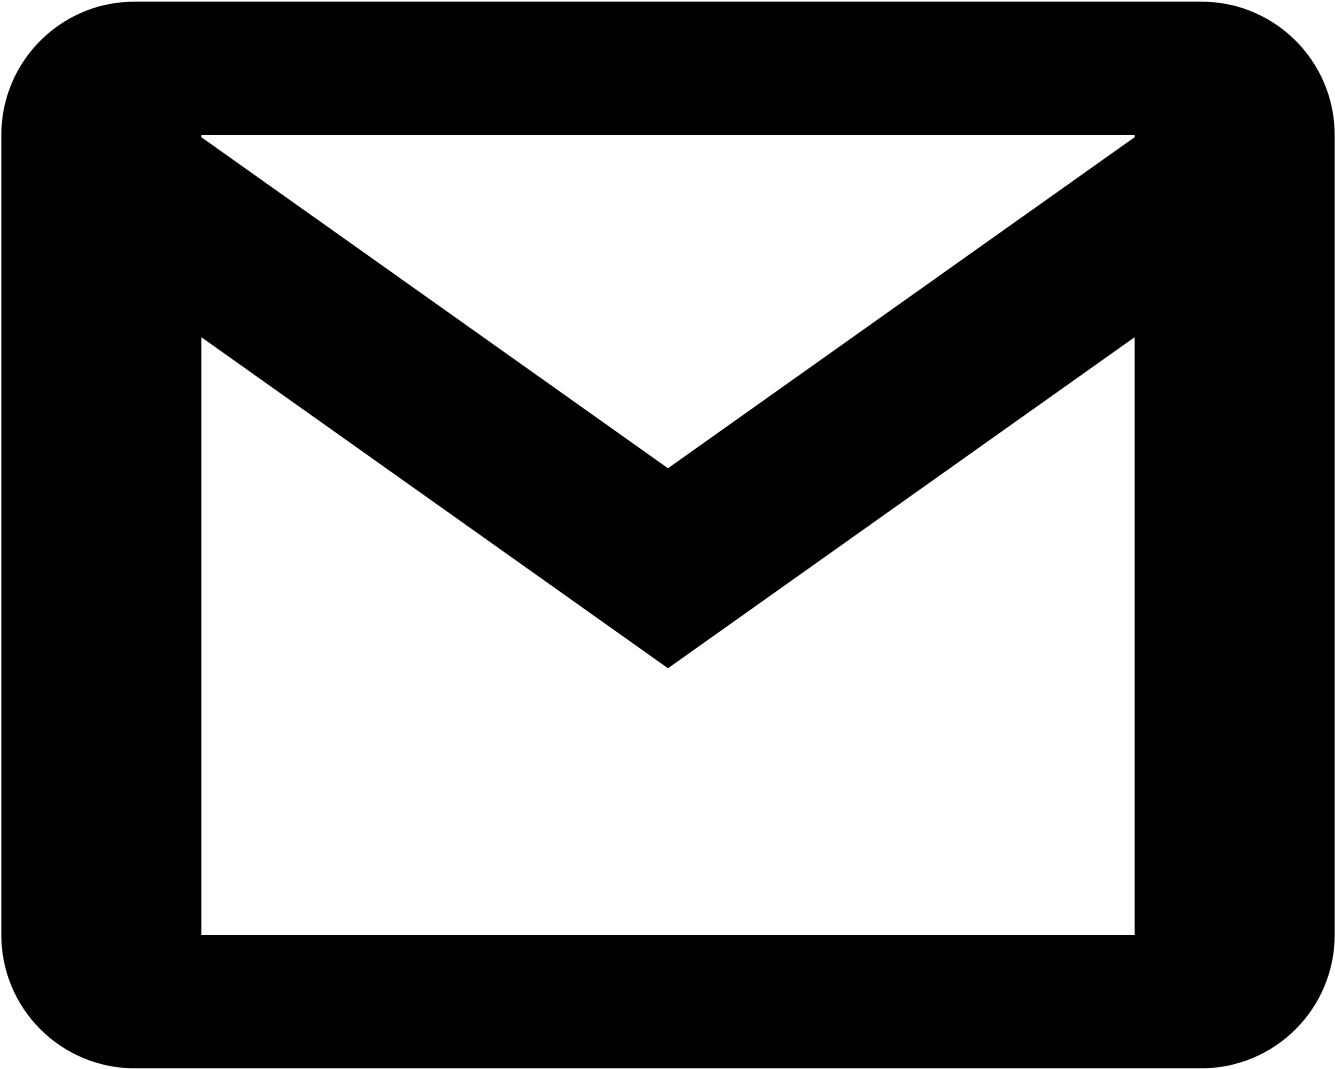 Download Gmail Logo Png - Gmail Logo Black And White PNG Image with No  Background - PNGkey.com